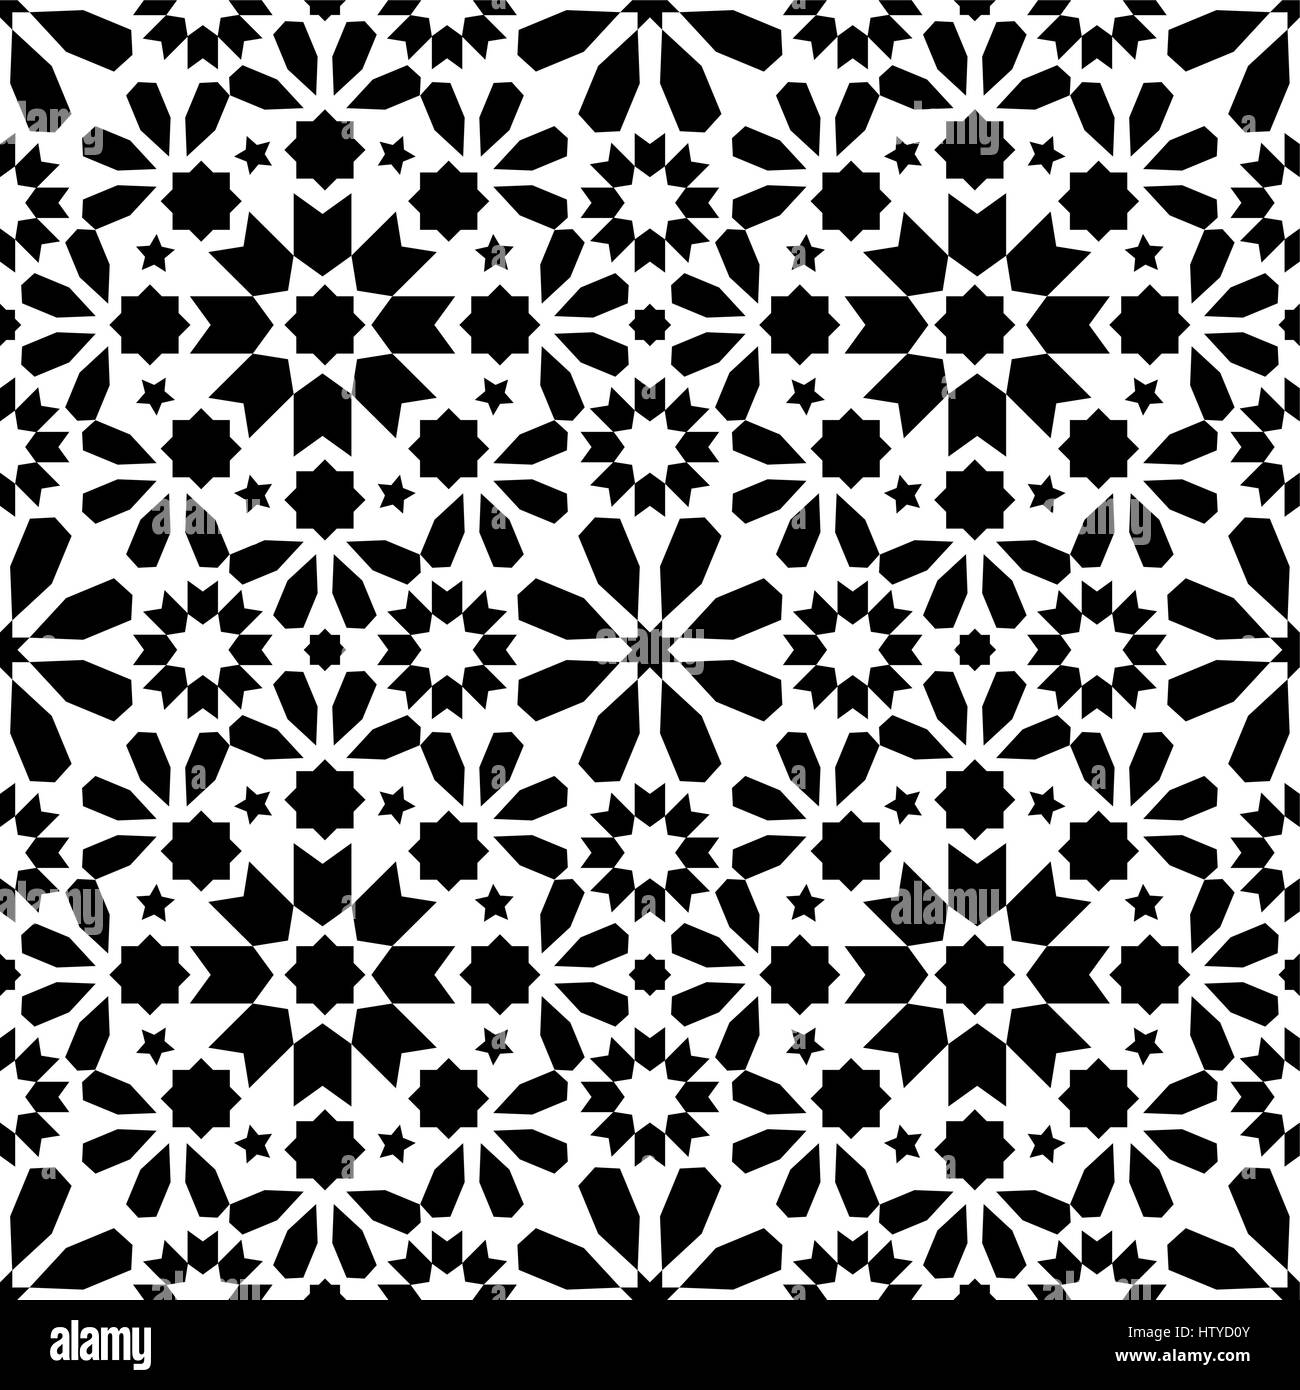 Vector of moroccan tile seamless pattern tile for design tile - Geometric Seamless Pattern Moroccan Tiles Design Seamless Black Tile Background